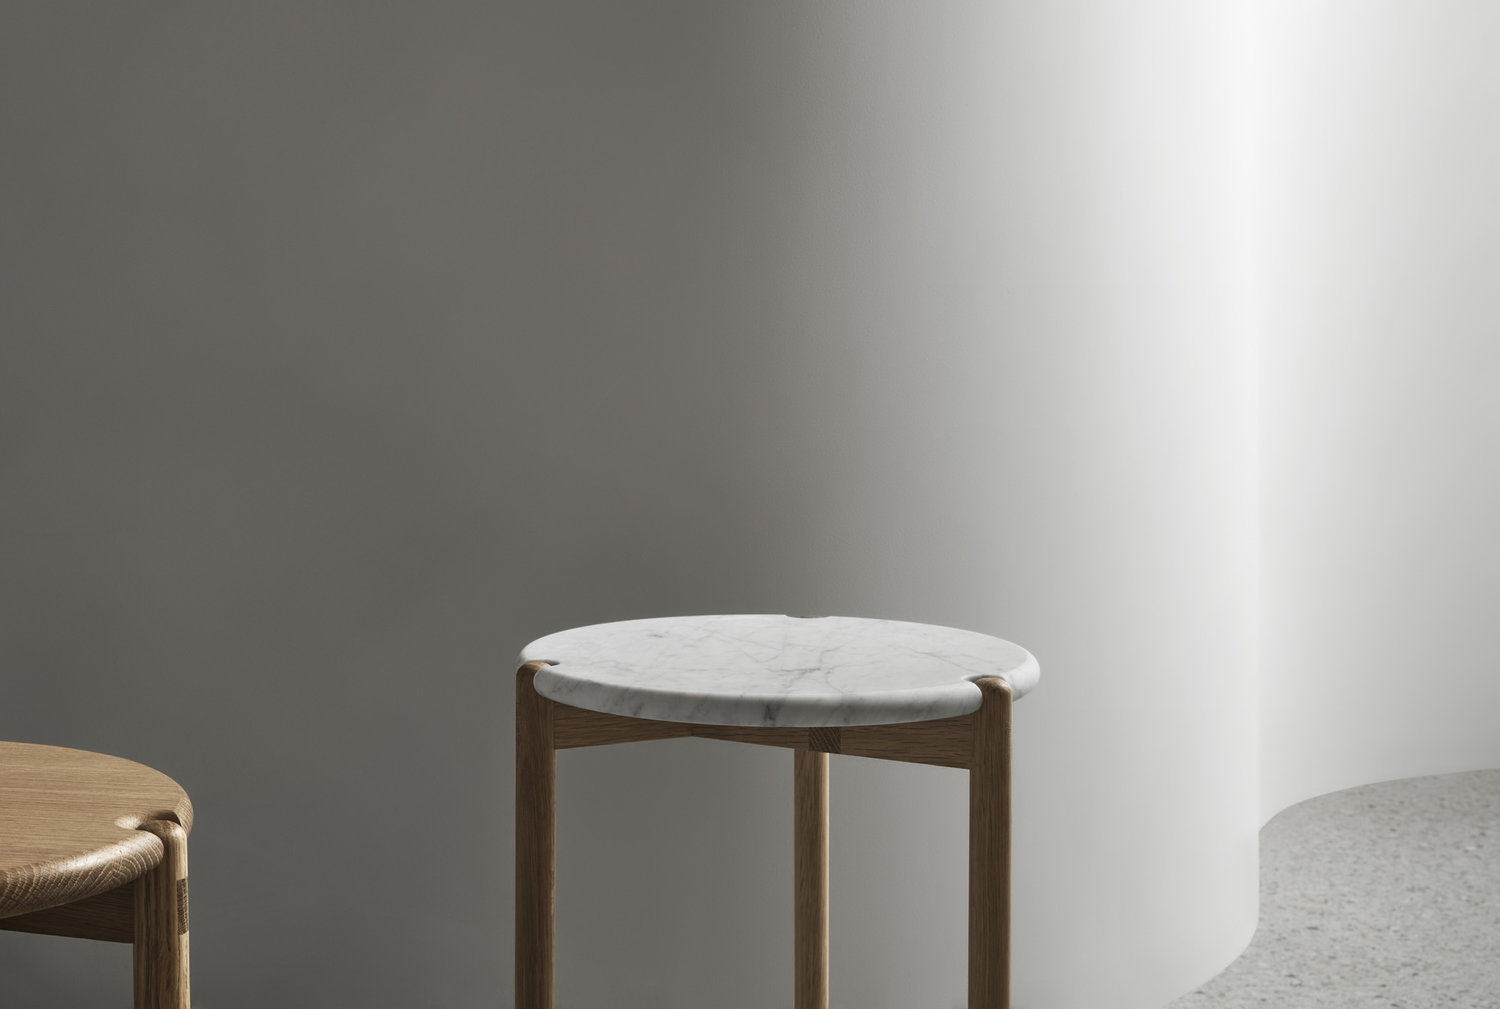 The AOS – T Side Table is designed and made locally by Brunswick (Melbourne, Victoria) furniture designer Nicholas McDonald of Made by Morgen.